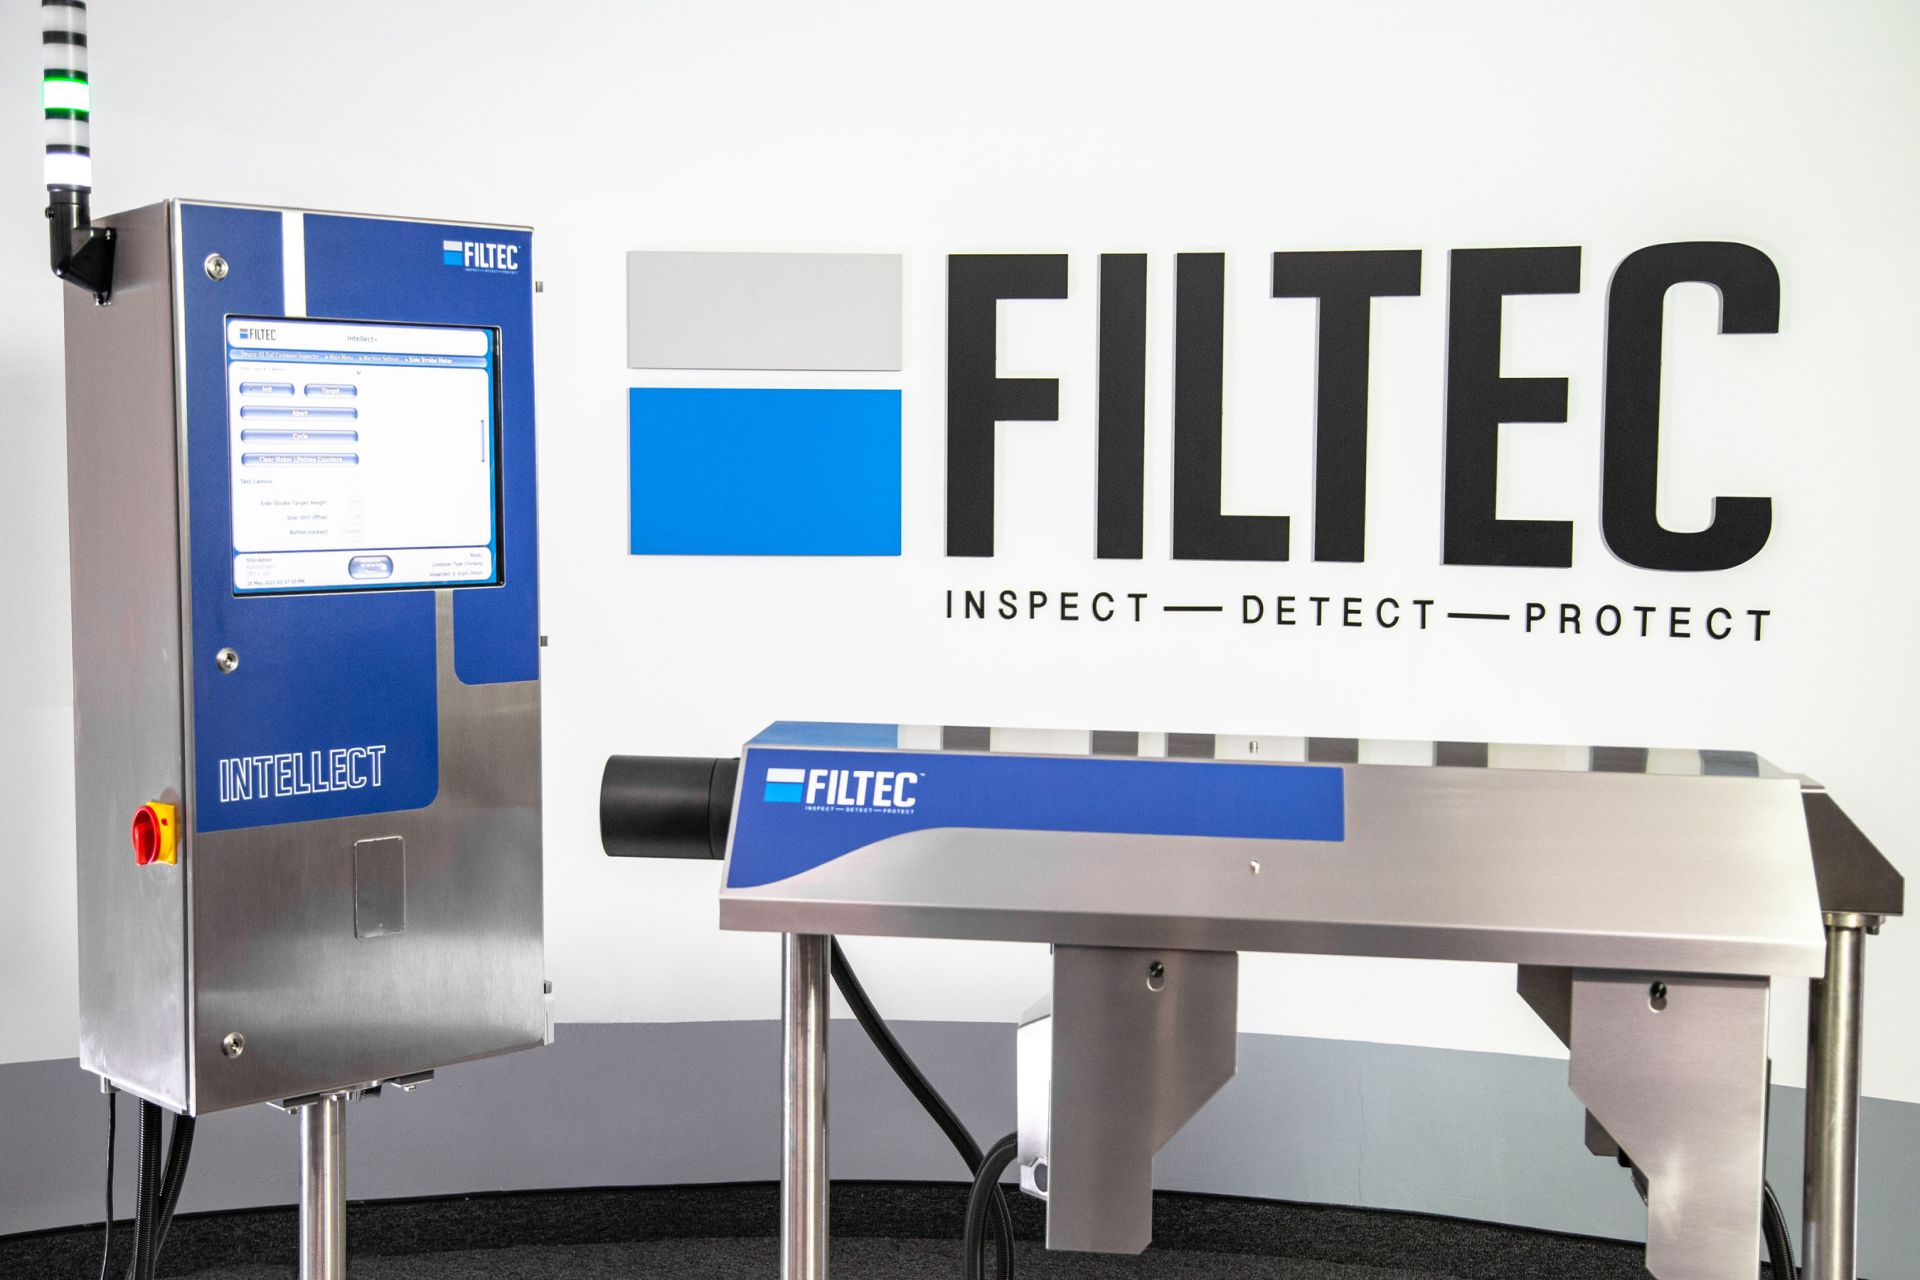 FILTEC introduces thermal glue solution for packaging inspection